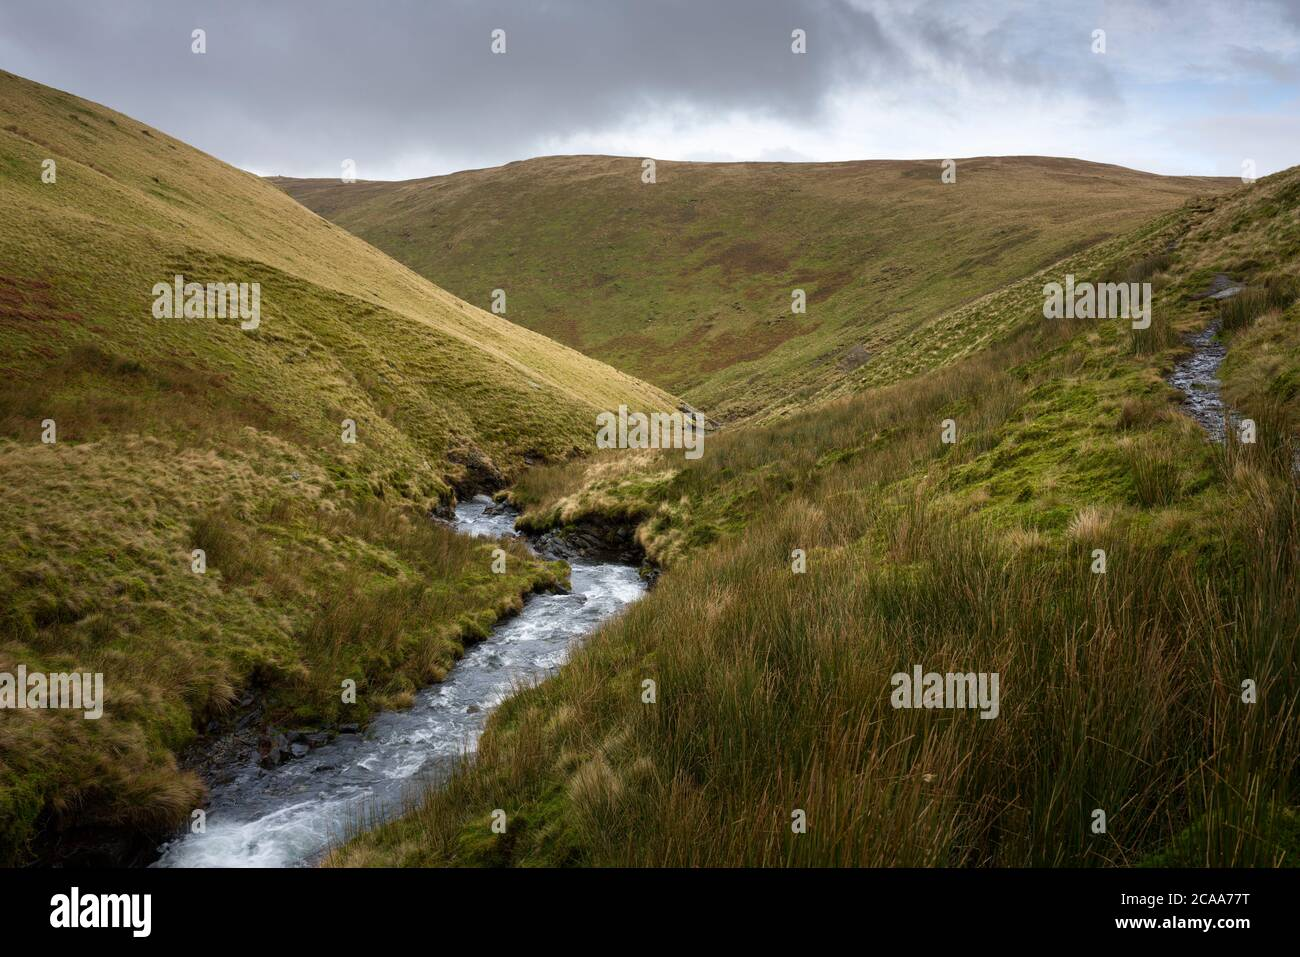 River Glenderamackin in the valley between Bannderdale Crags and Scales Fell with Southern Fell beyond in the Lake District National Park, Cumbria, England. Stock Photo